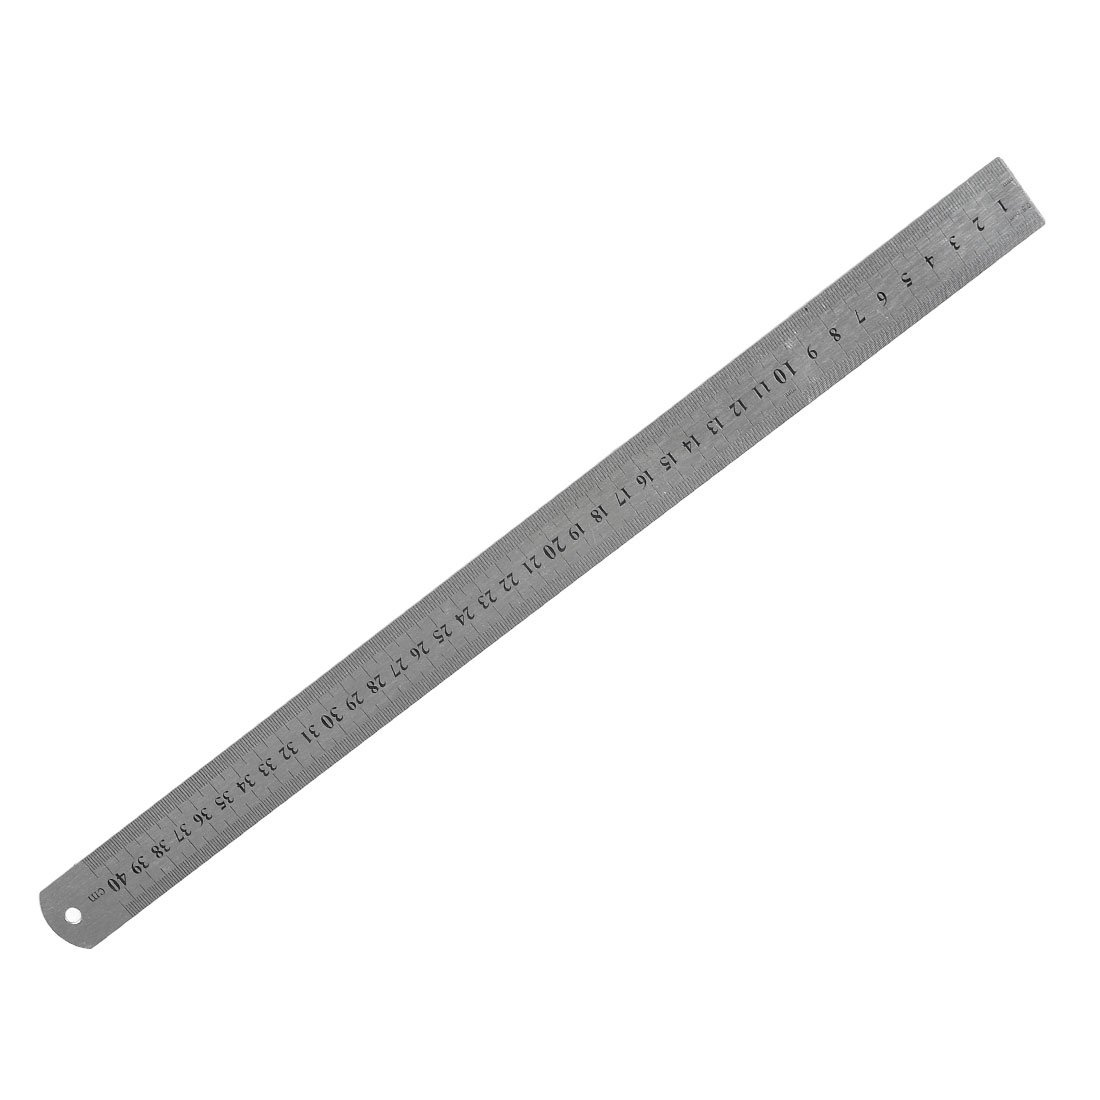 New And Hot Stainless Steel 16 Inch Straight Ruler Measuring Kit Metric 40cm